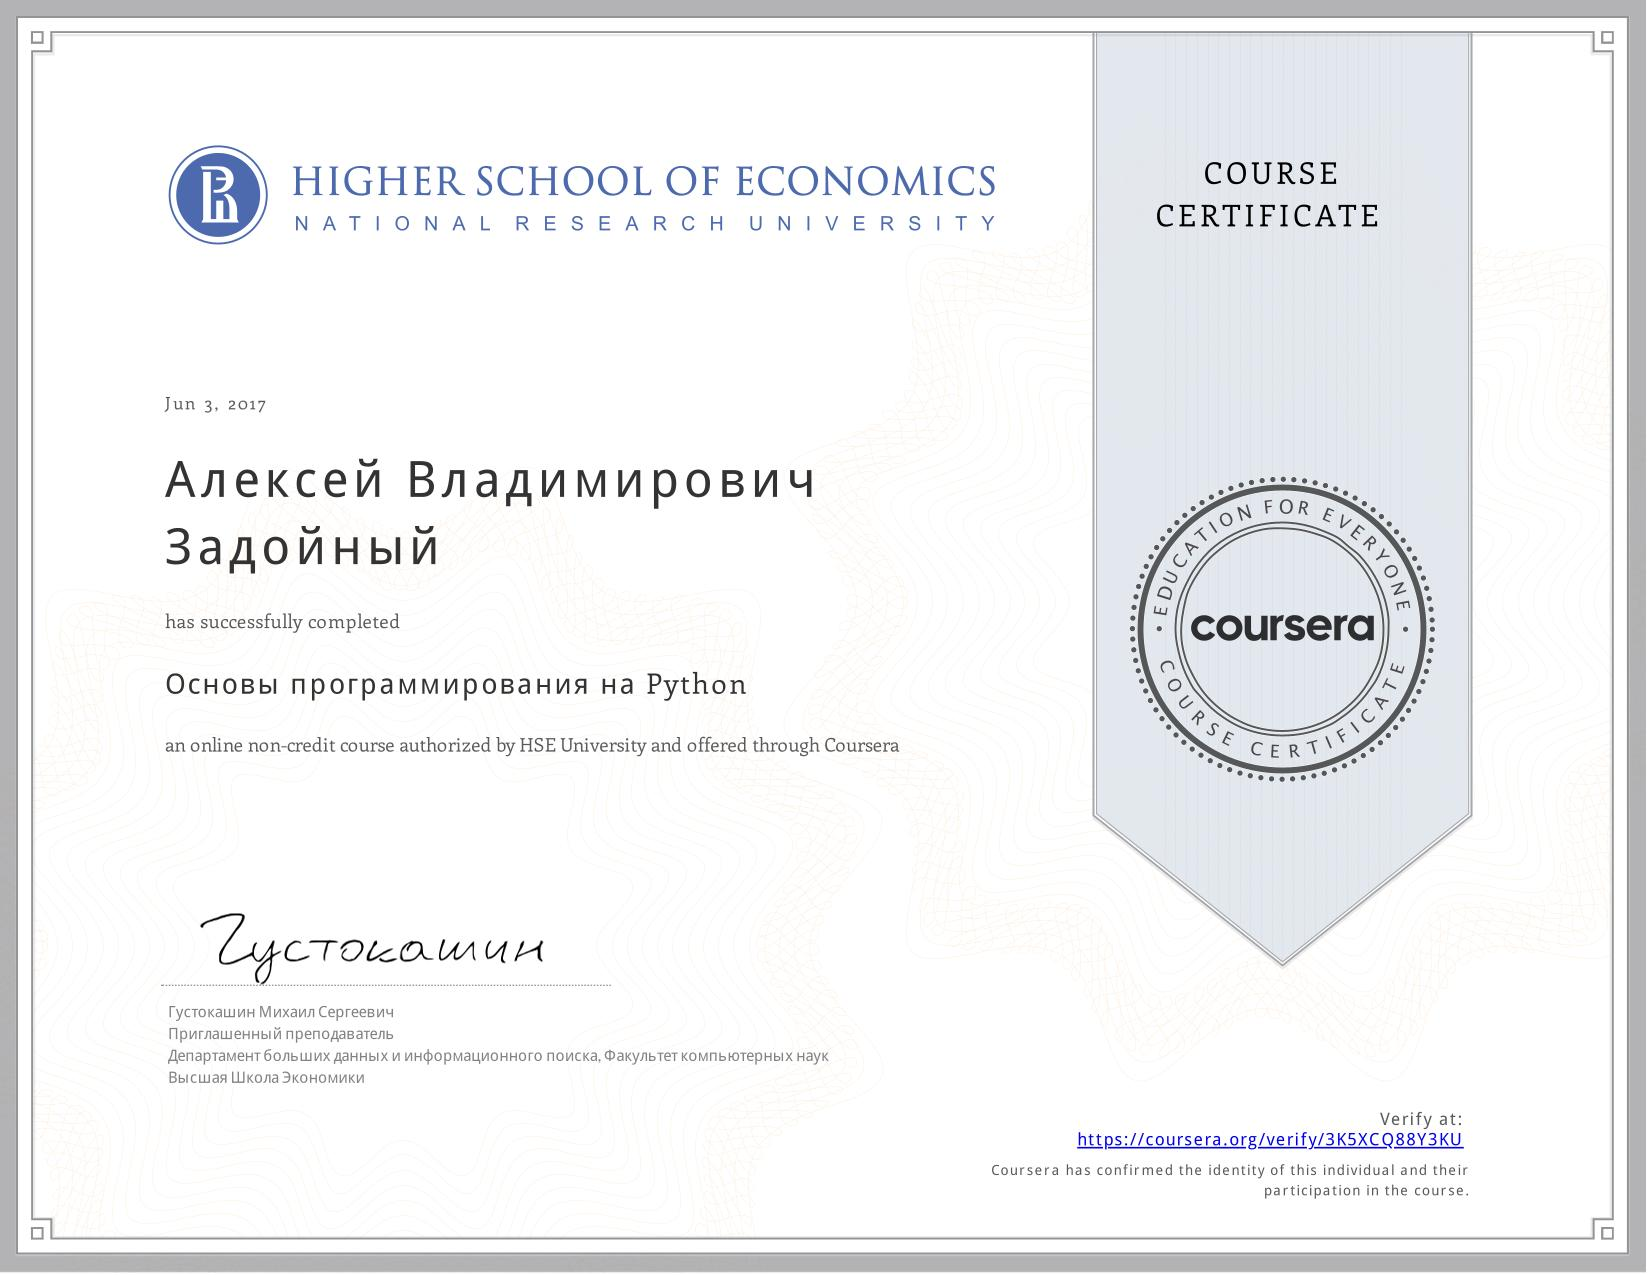 View certificate for Алексей Владимирович Задойный, Основы программирования на Python, an online non-credit course authorized by National Research University Higher School of Economics and offered through Coursera